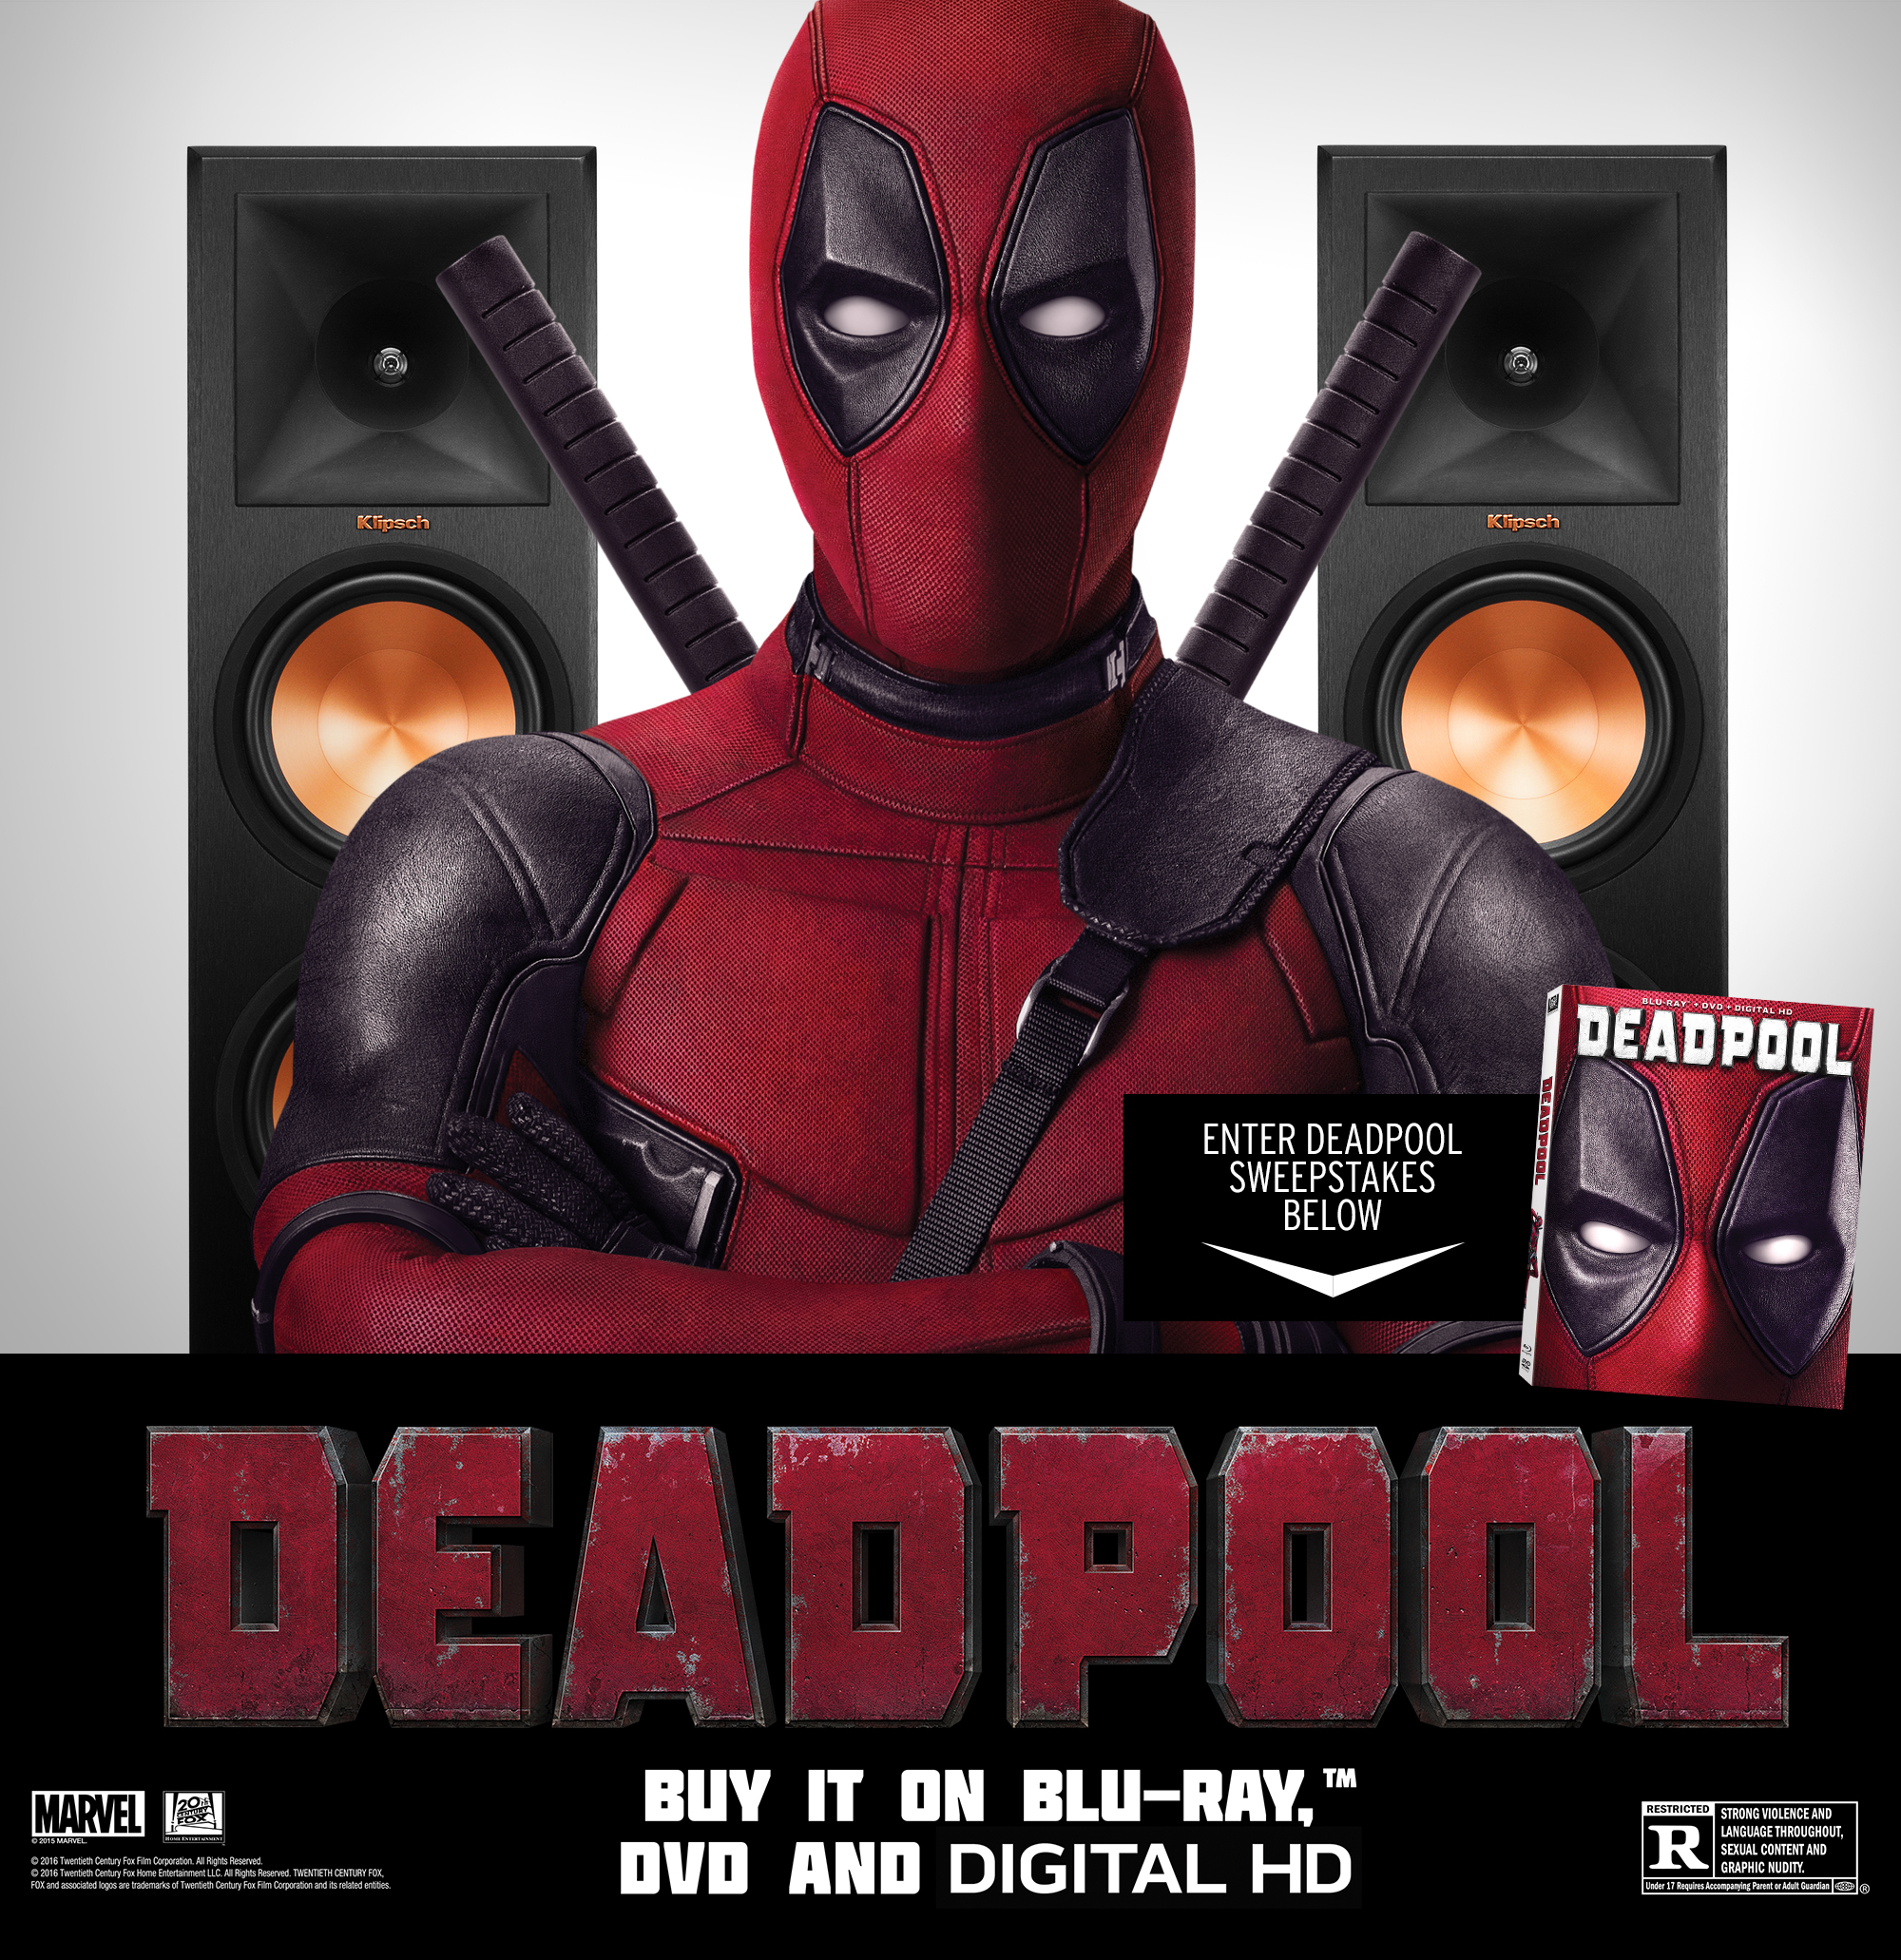 Deadpool Website Crap 4